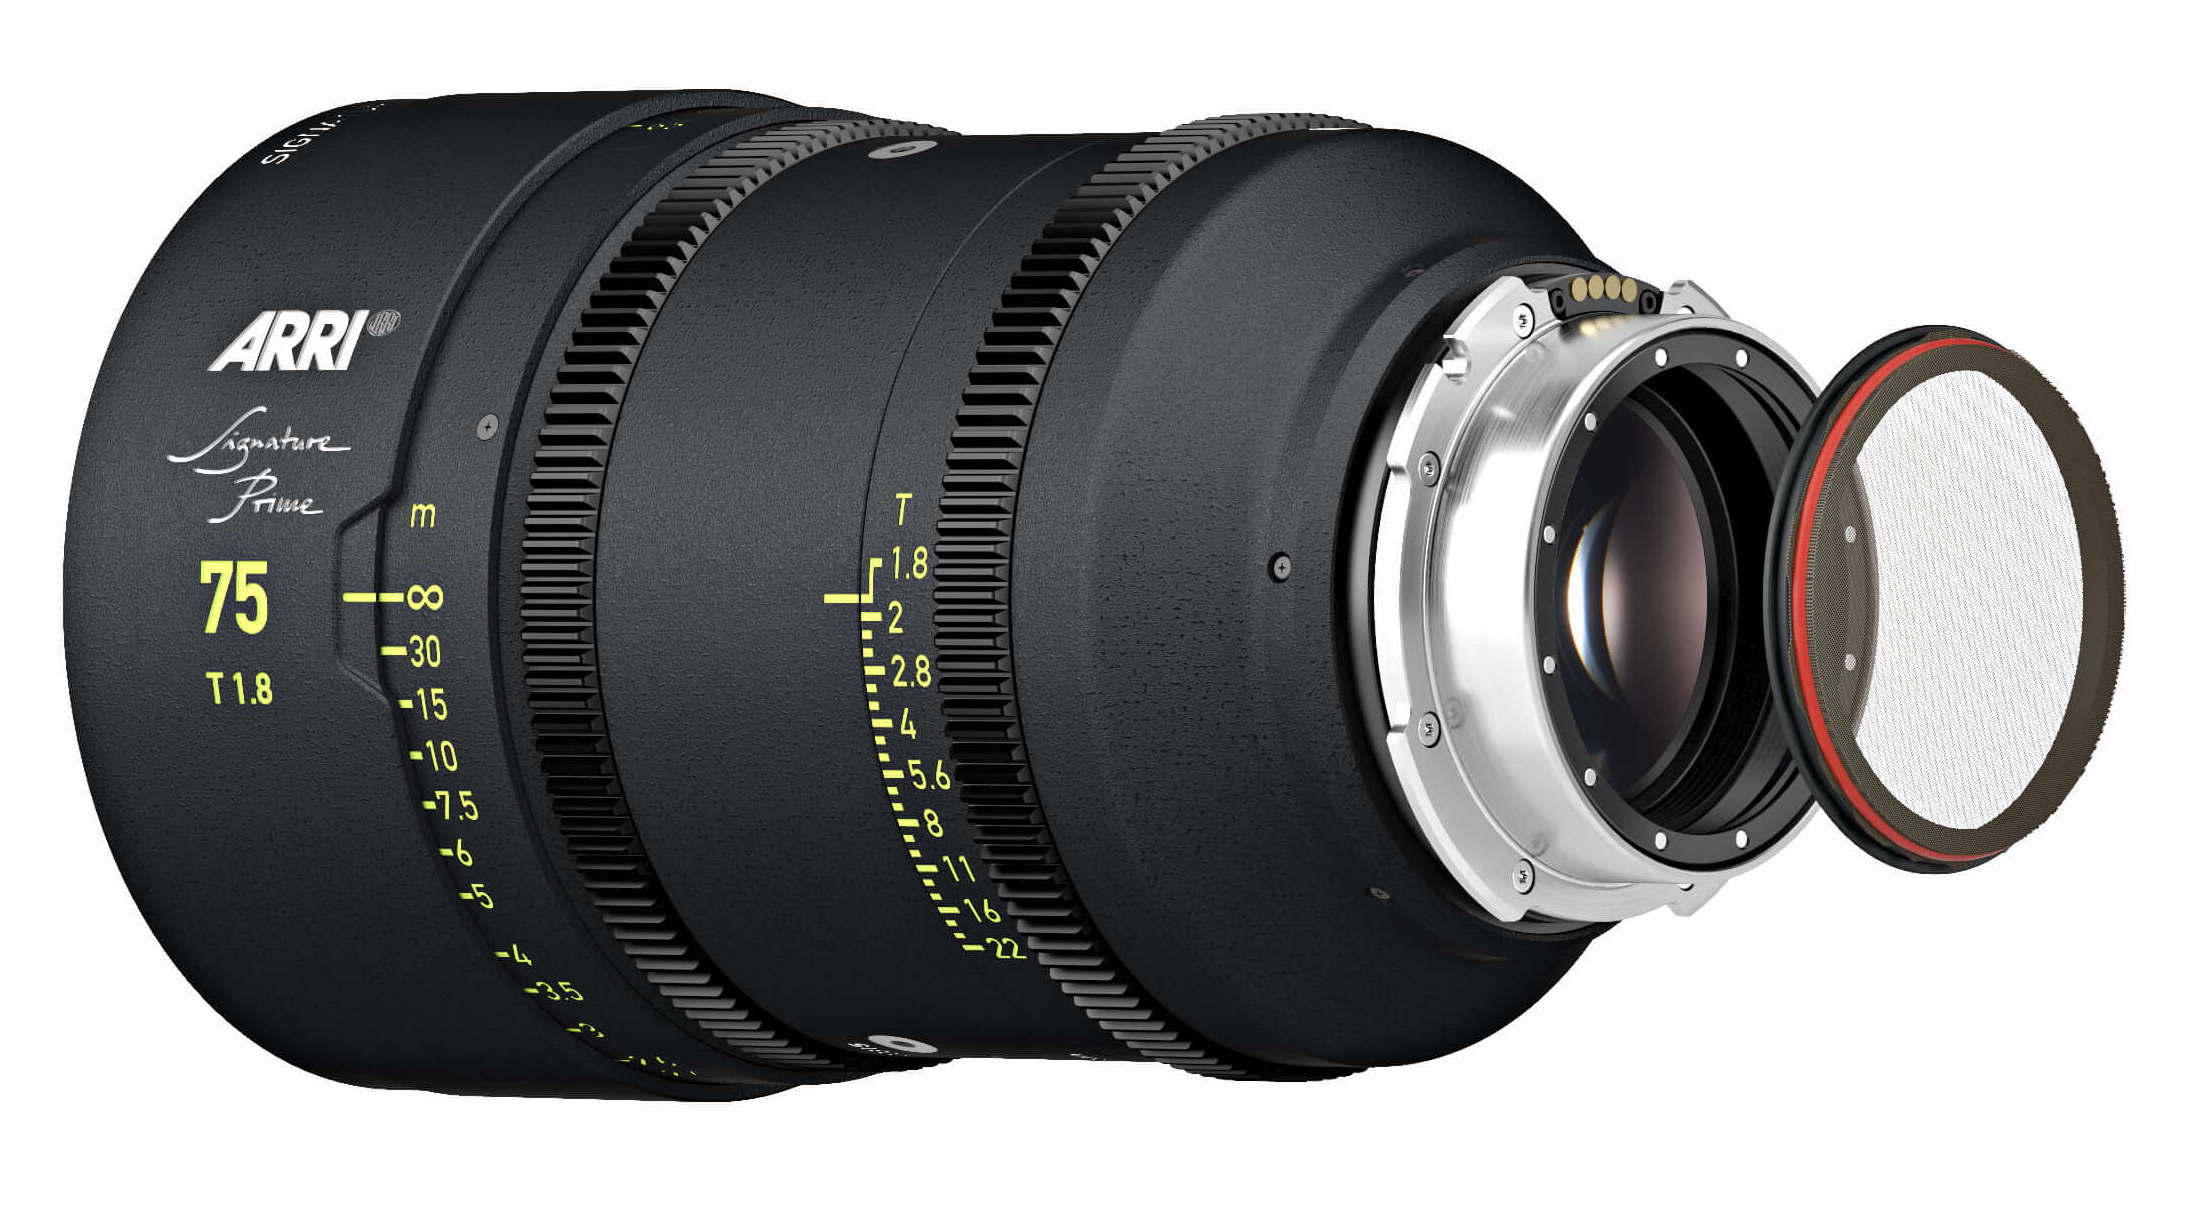 Arri Signature Prime lens 75mm net holder